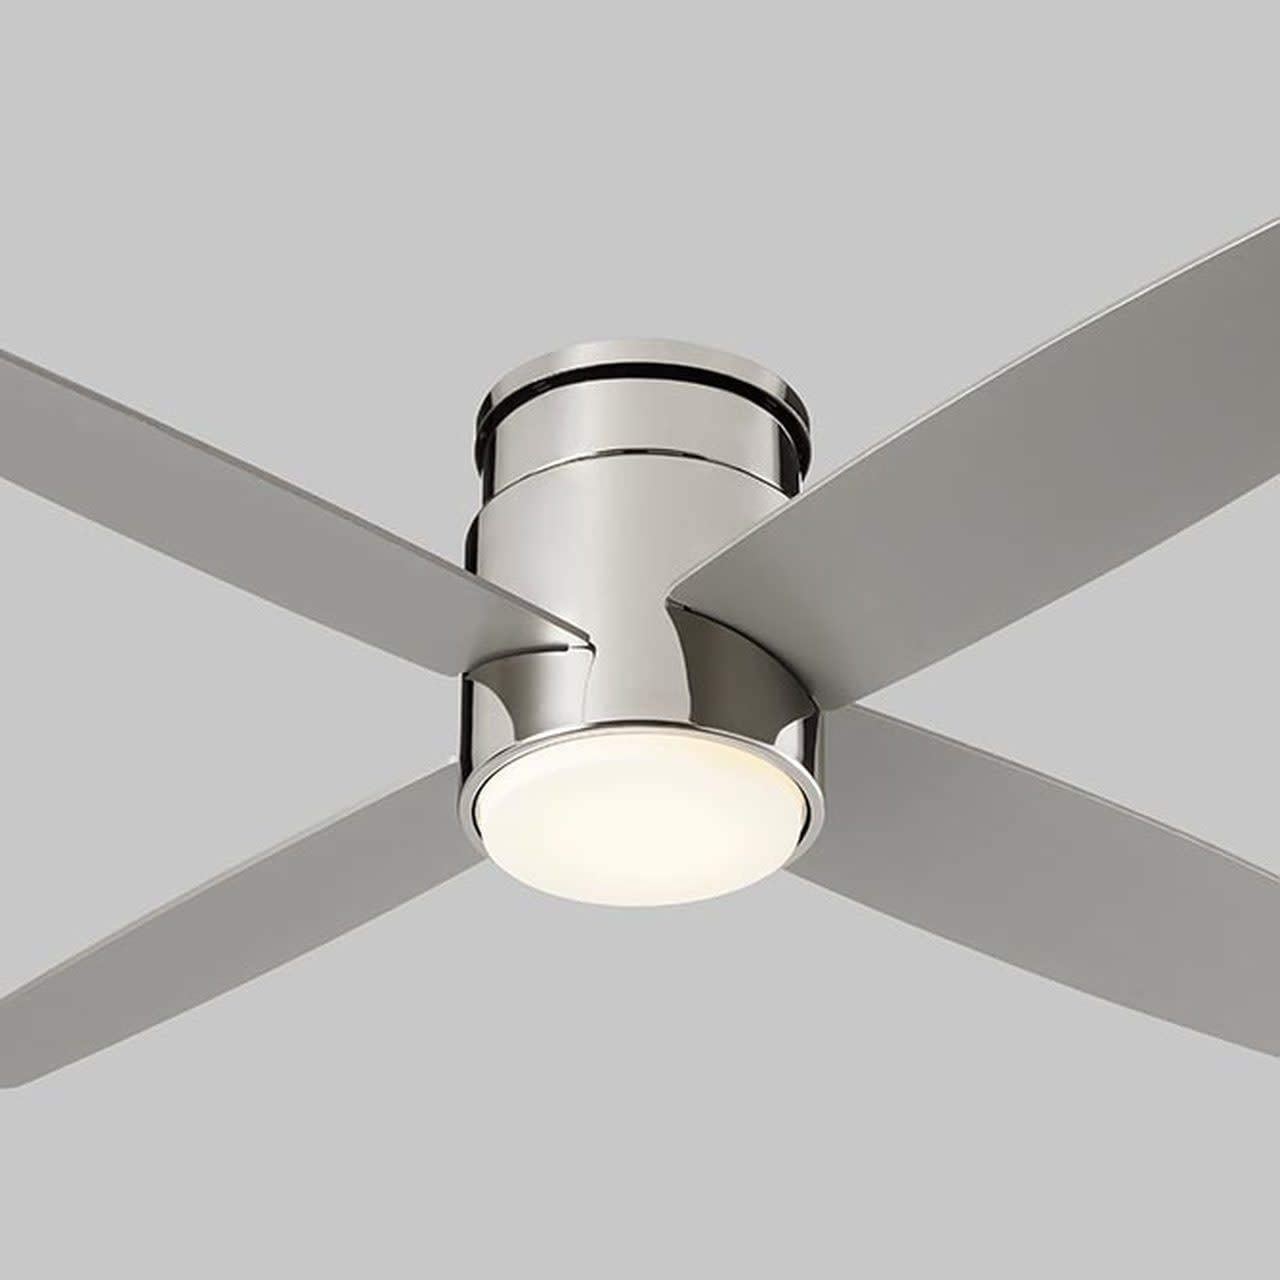 Max 67% OFF Oxygen Lighting 3-102-20 2021 new Modern Contemporary 52``Ceiling